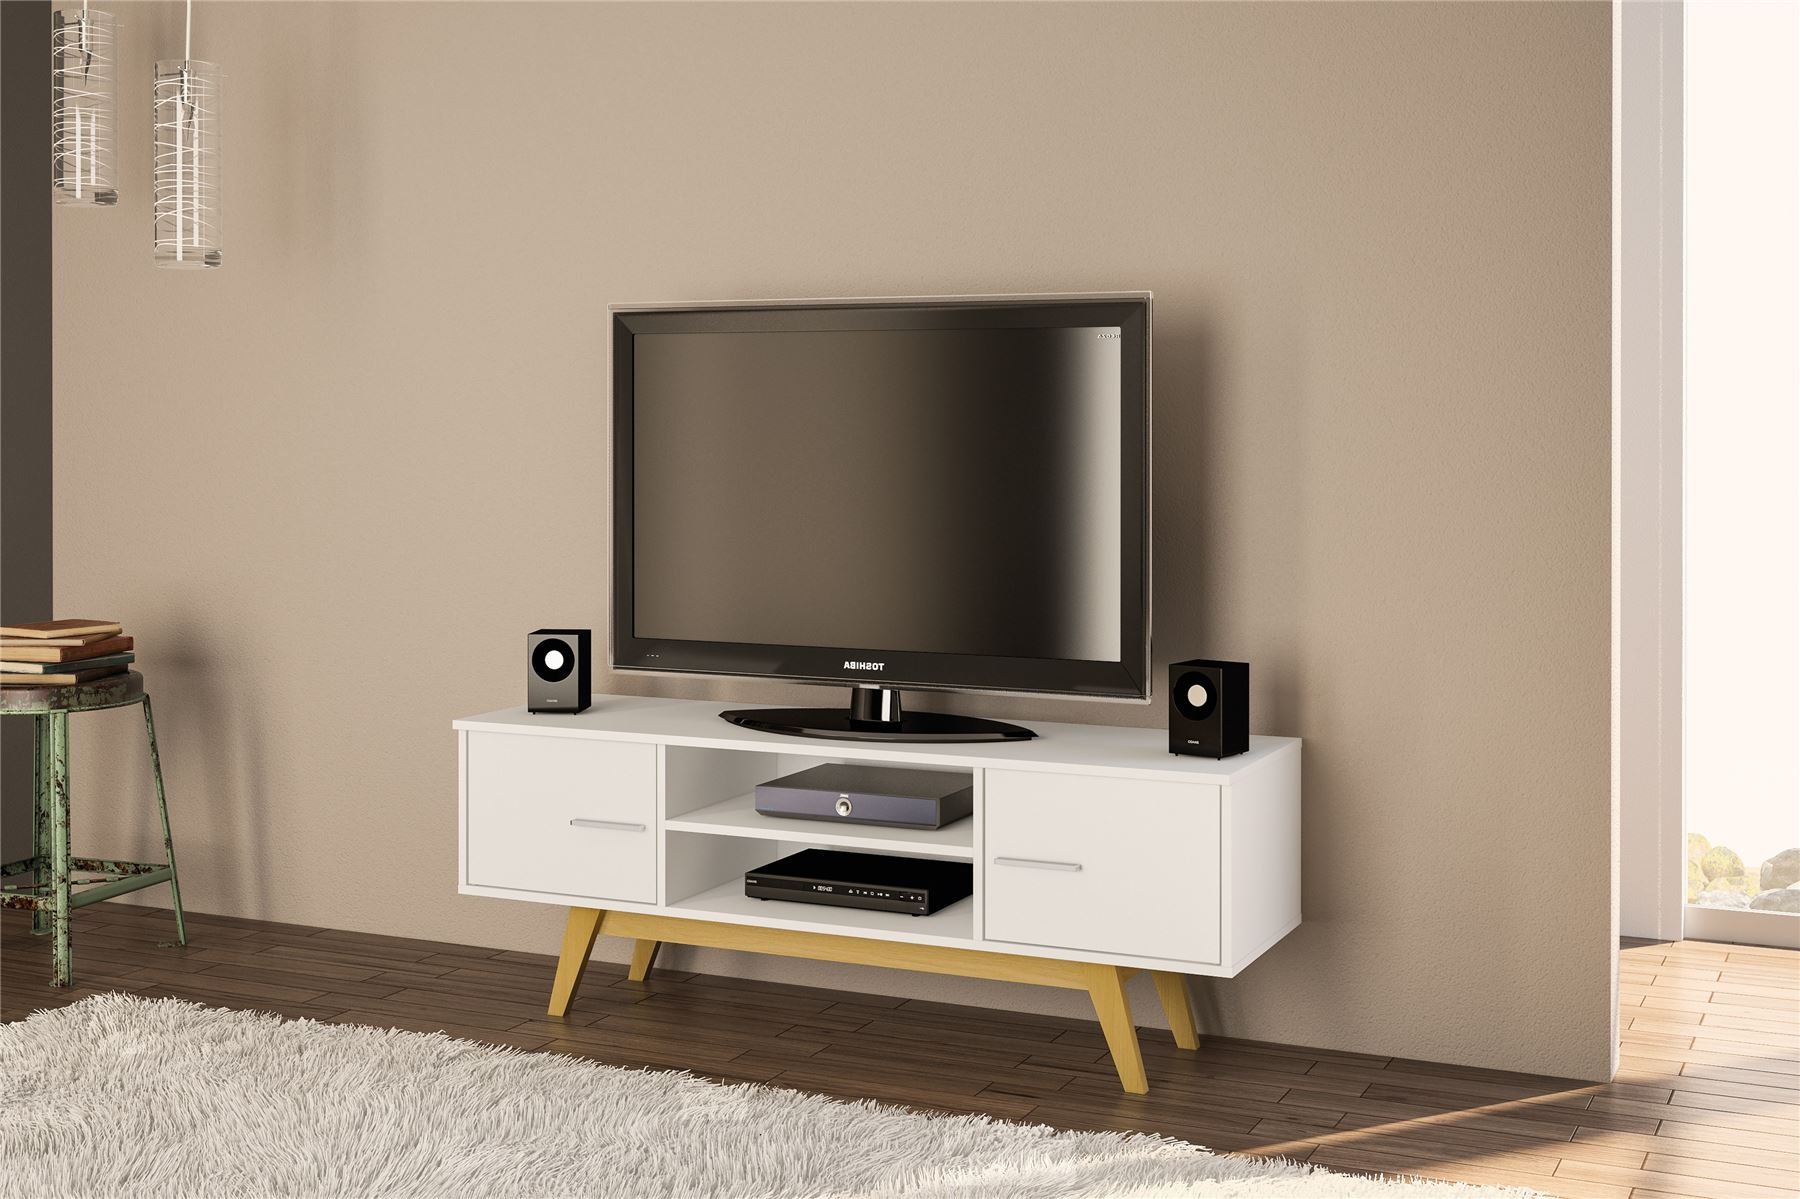 White Gloss Living Room Cupboard TV Entertainment Unit Stand Cabinet